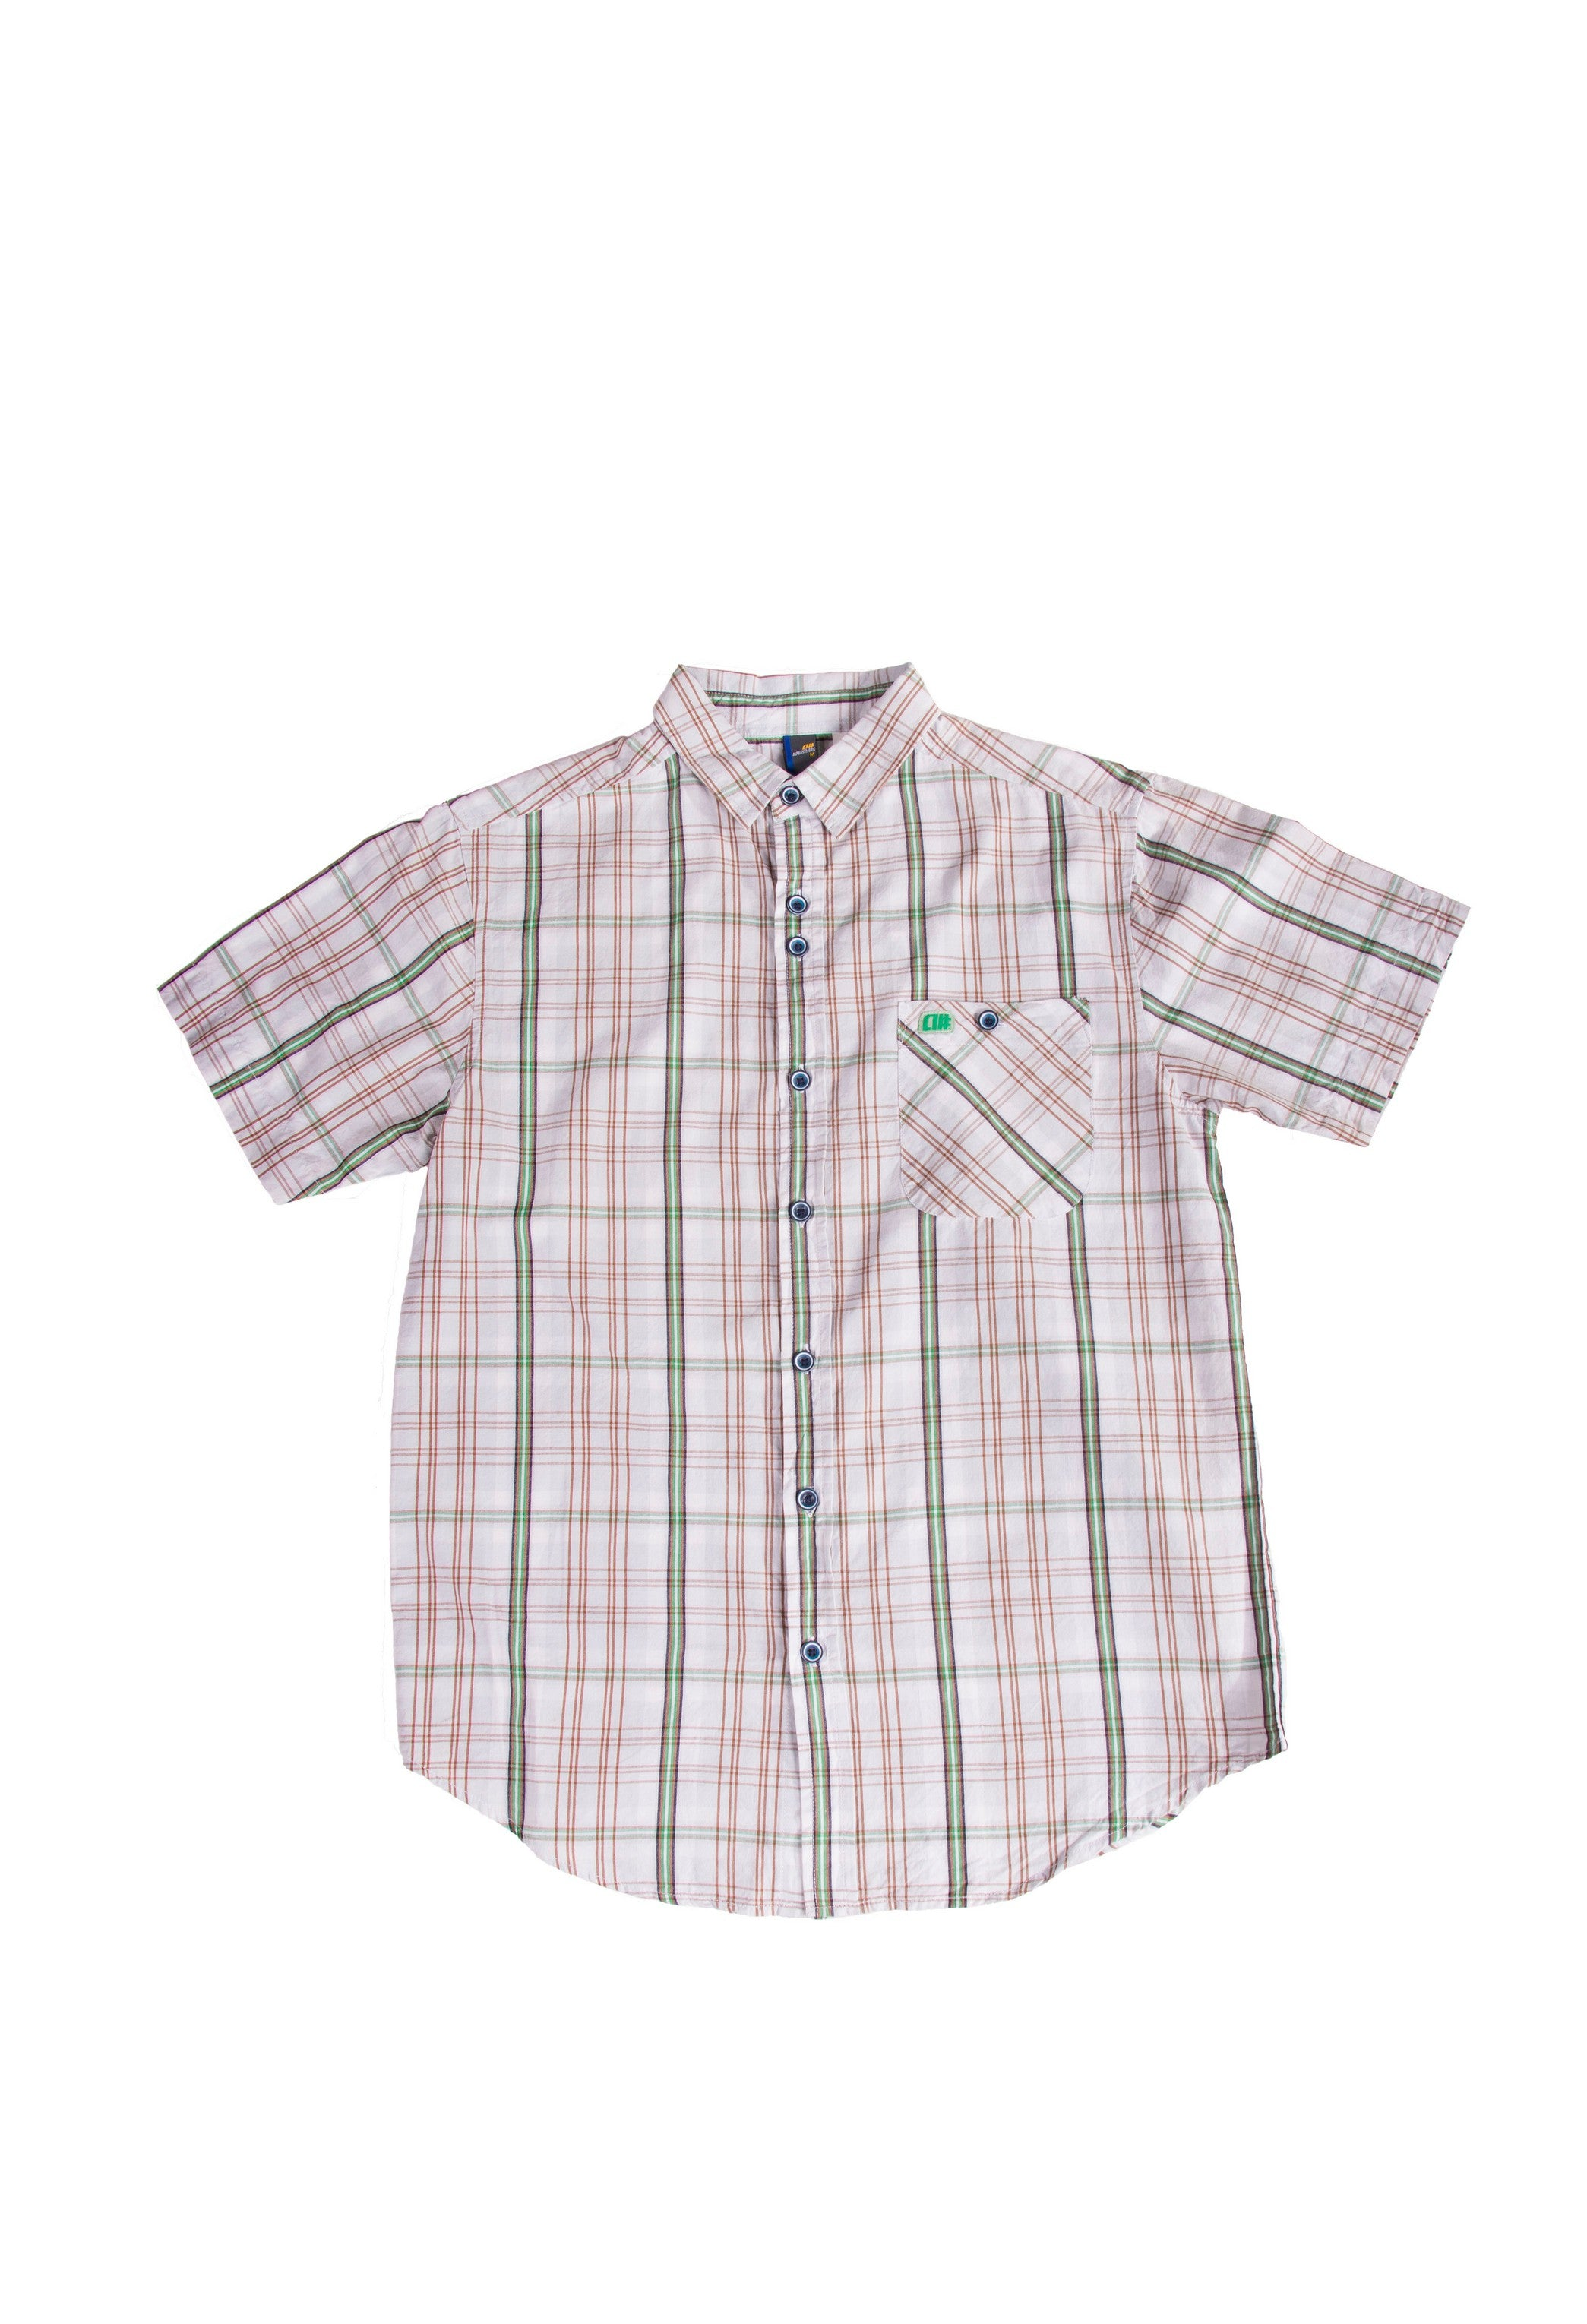 Alphanumeric Petrozavodsk Plaid Short-sleeve